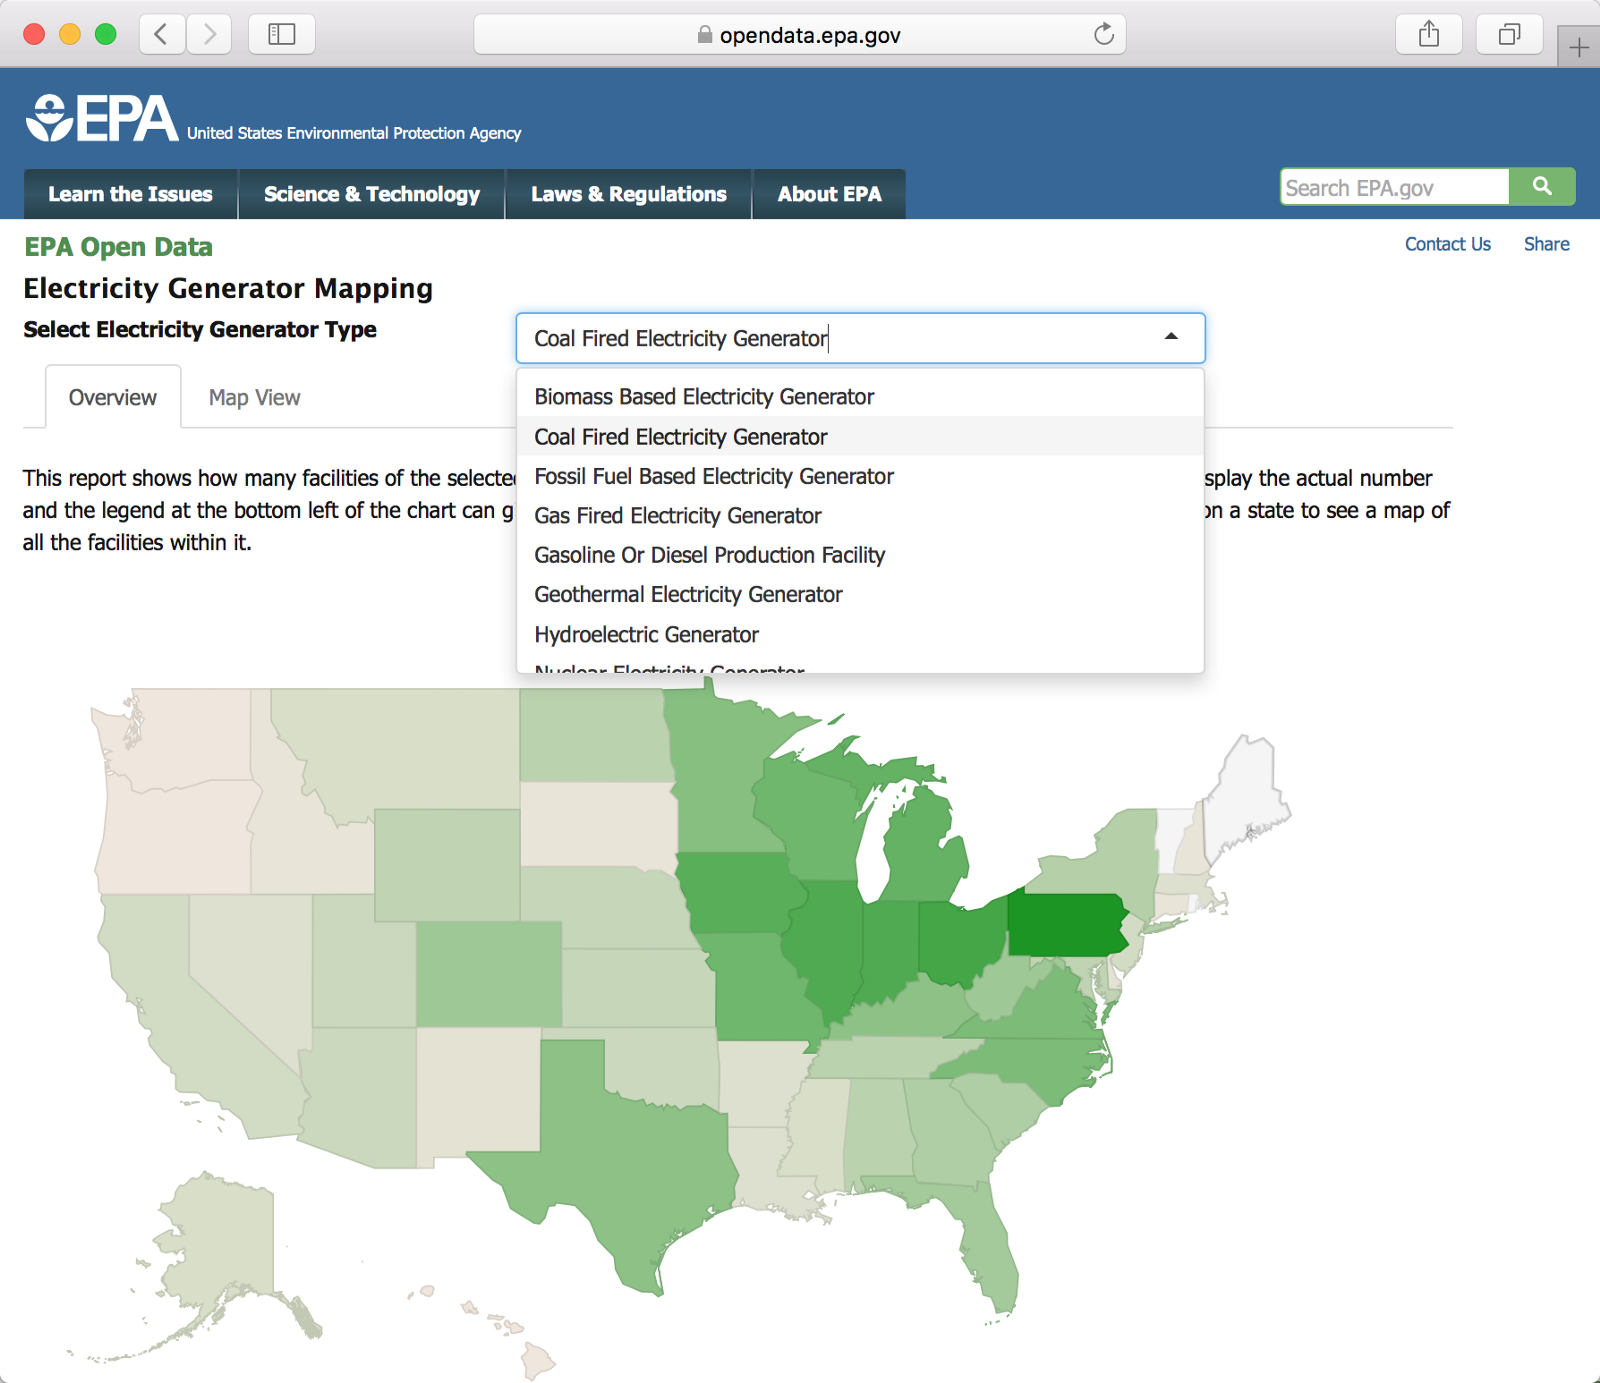 US EPA Confirms Continuity Of Open Data Service Beyond Apr - Map of nuclear plants in us 2017